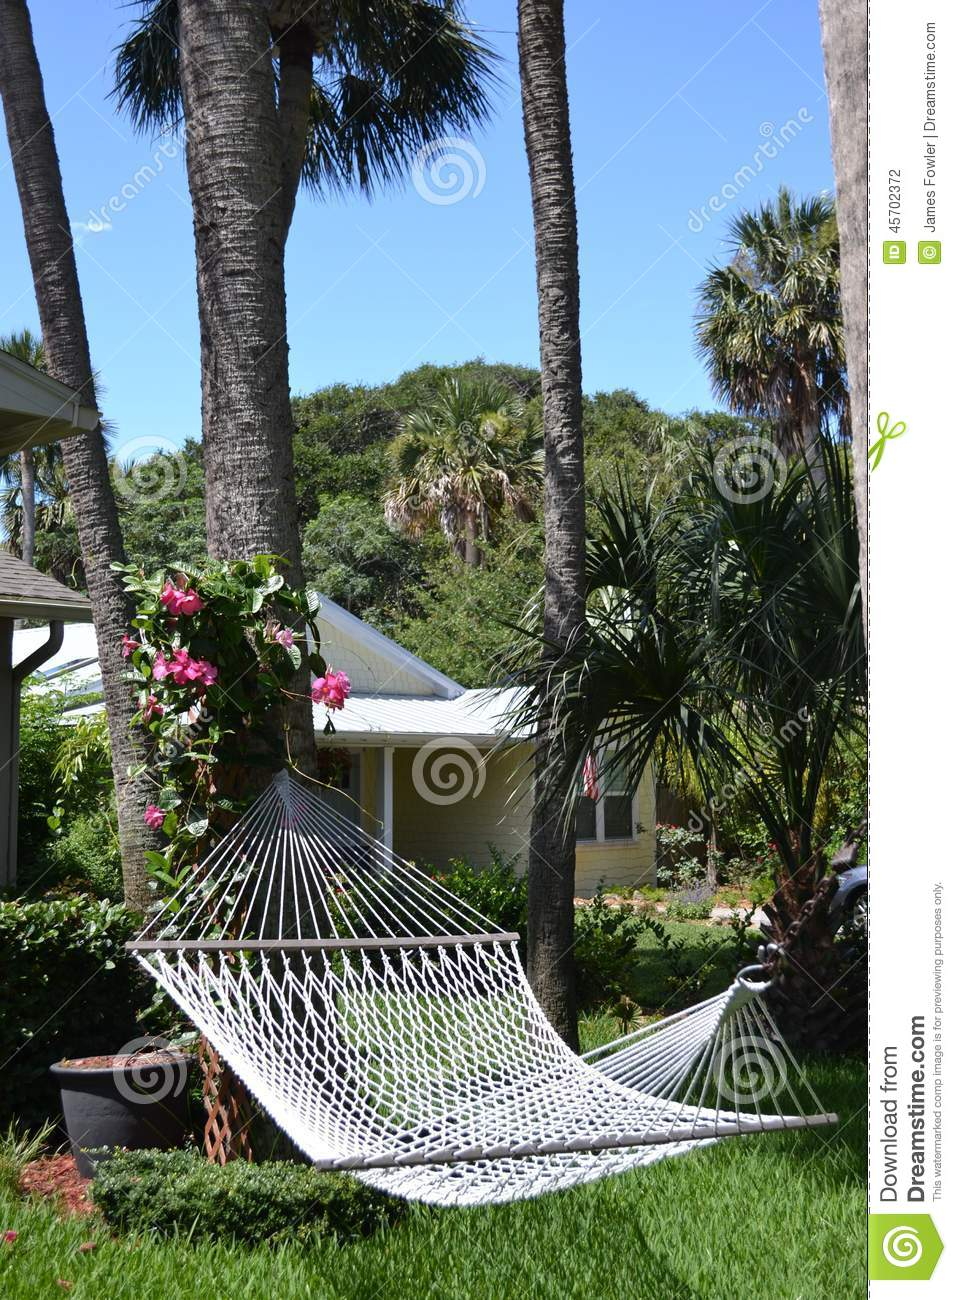 backyard hammock in tropics stock photo image 45702372